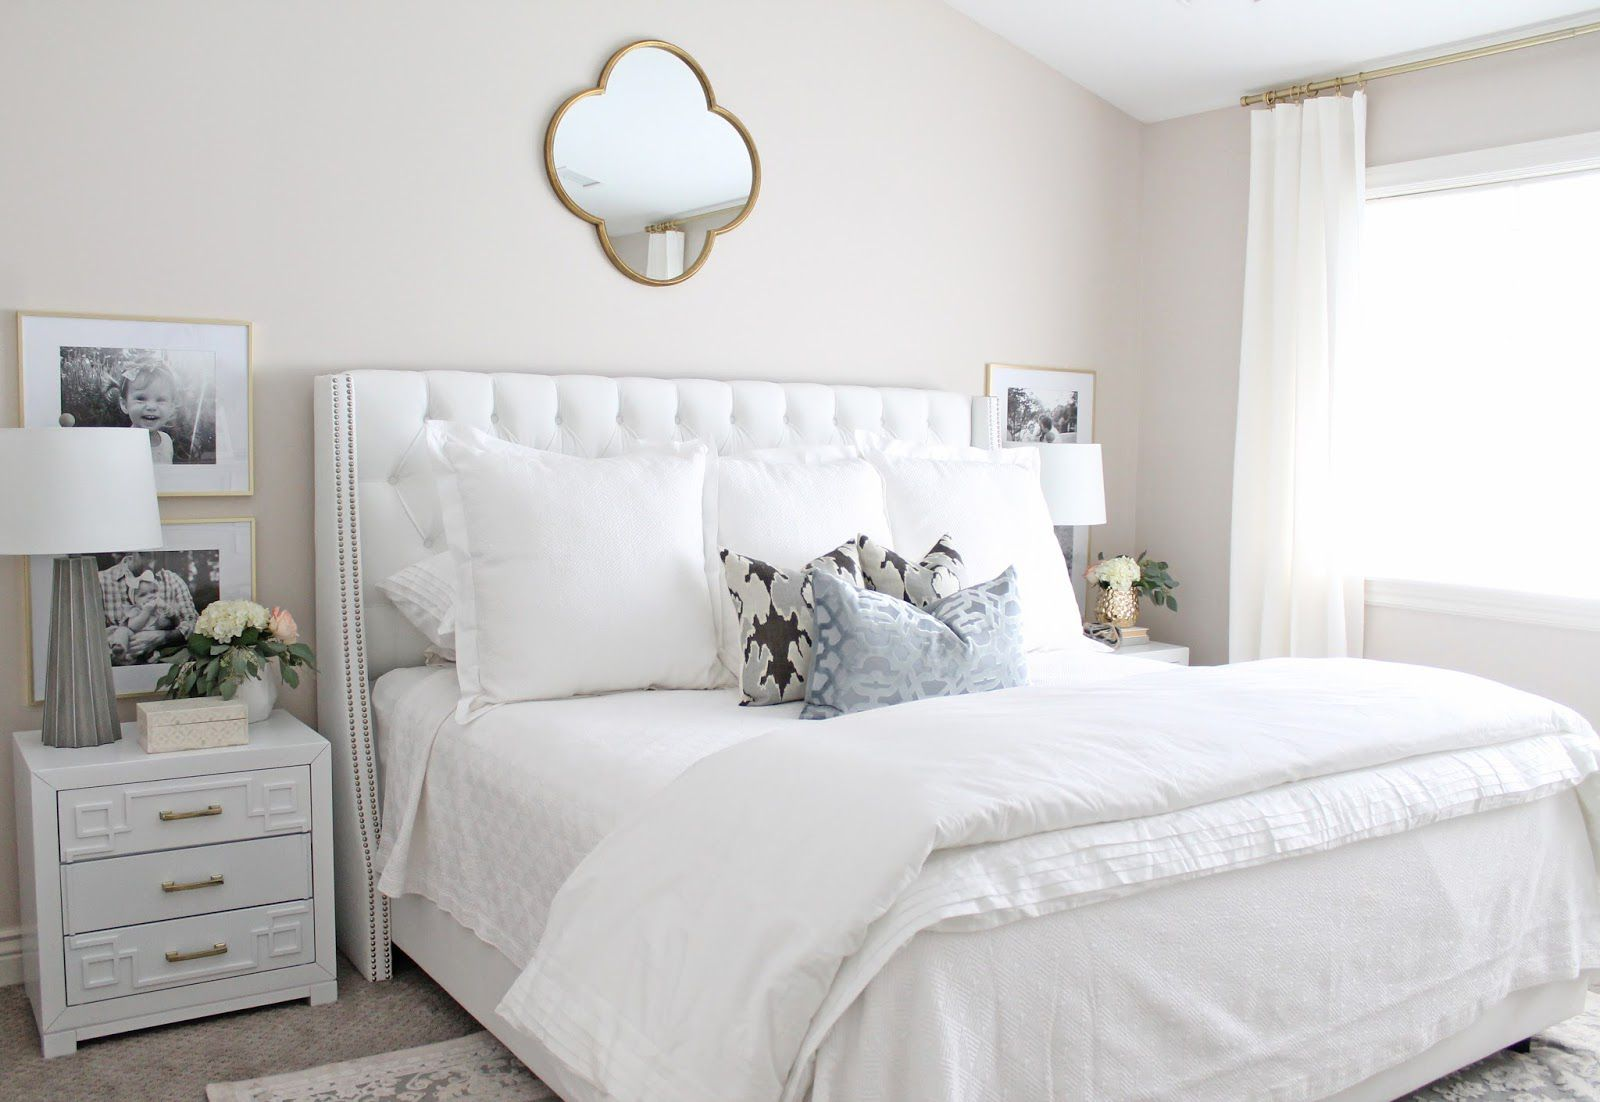 brass mirror over bed